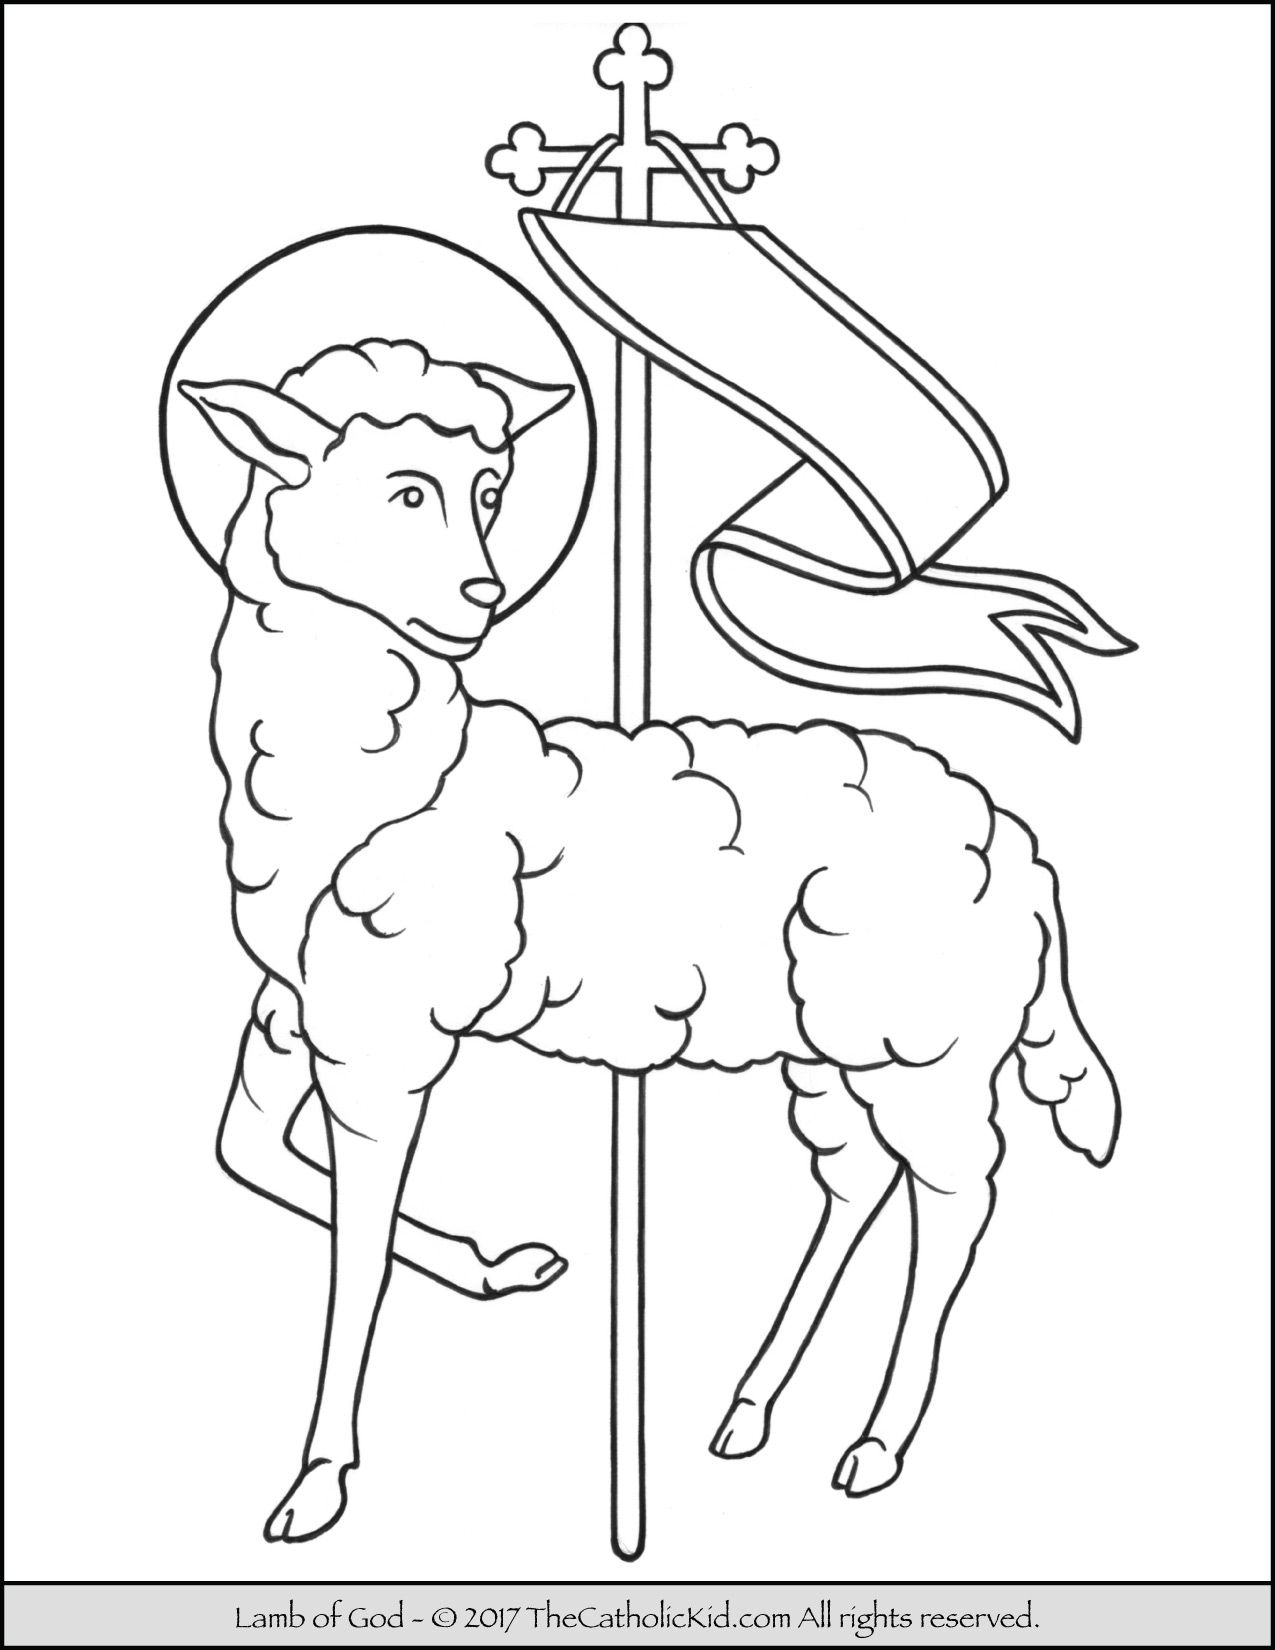 Lamb Of God Coloring Page Thecatholickid Com Jesus Coloring